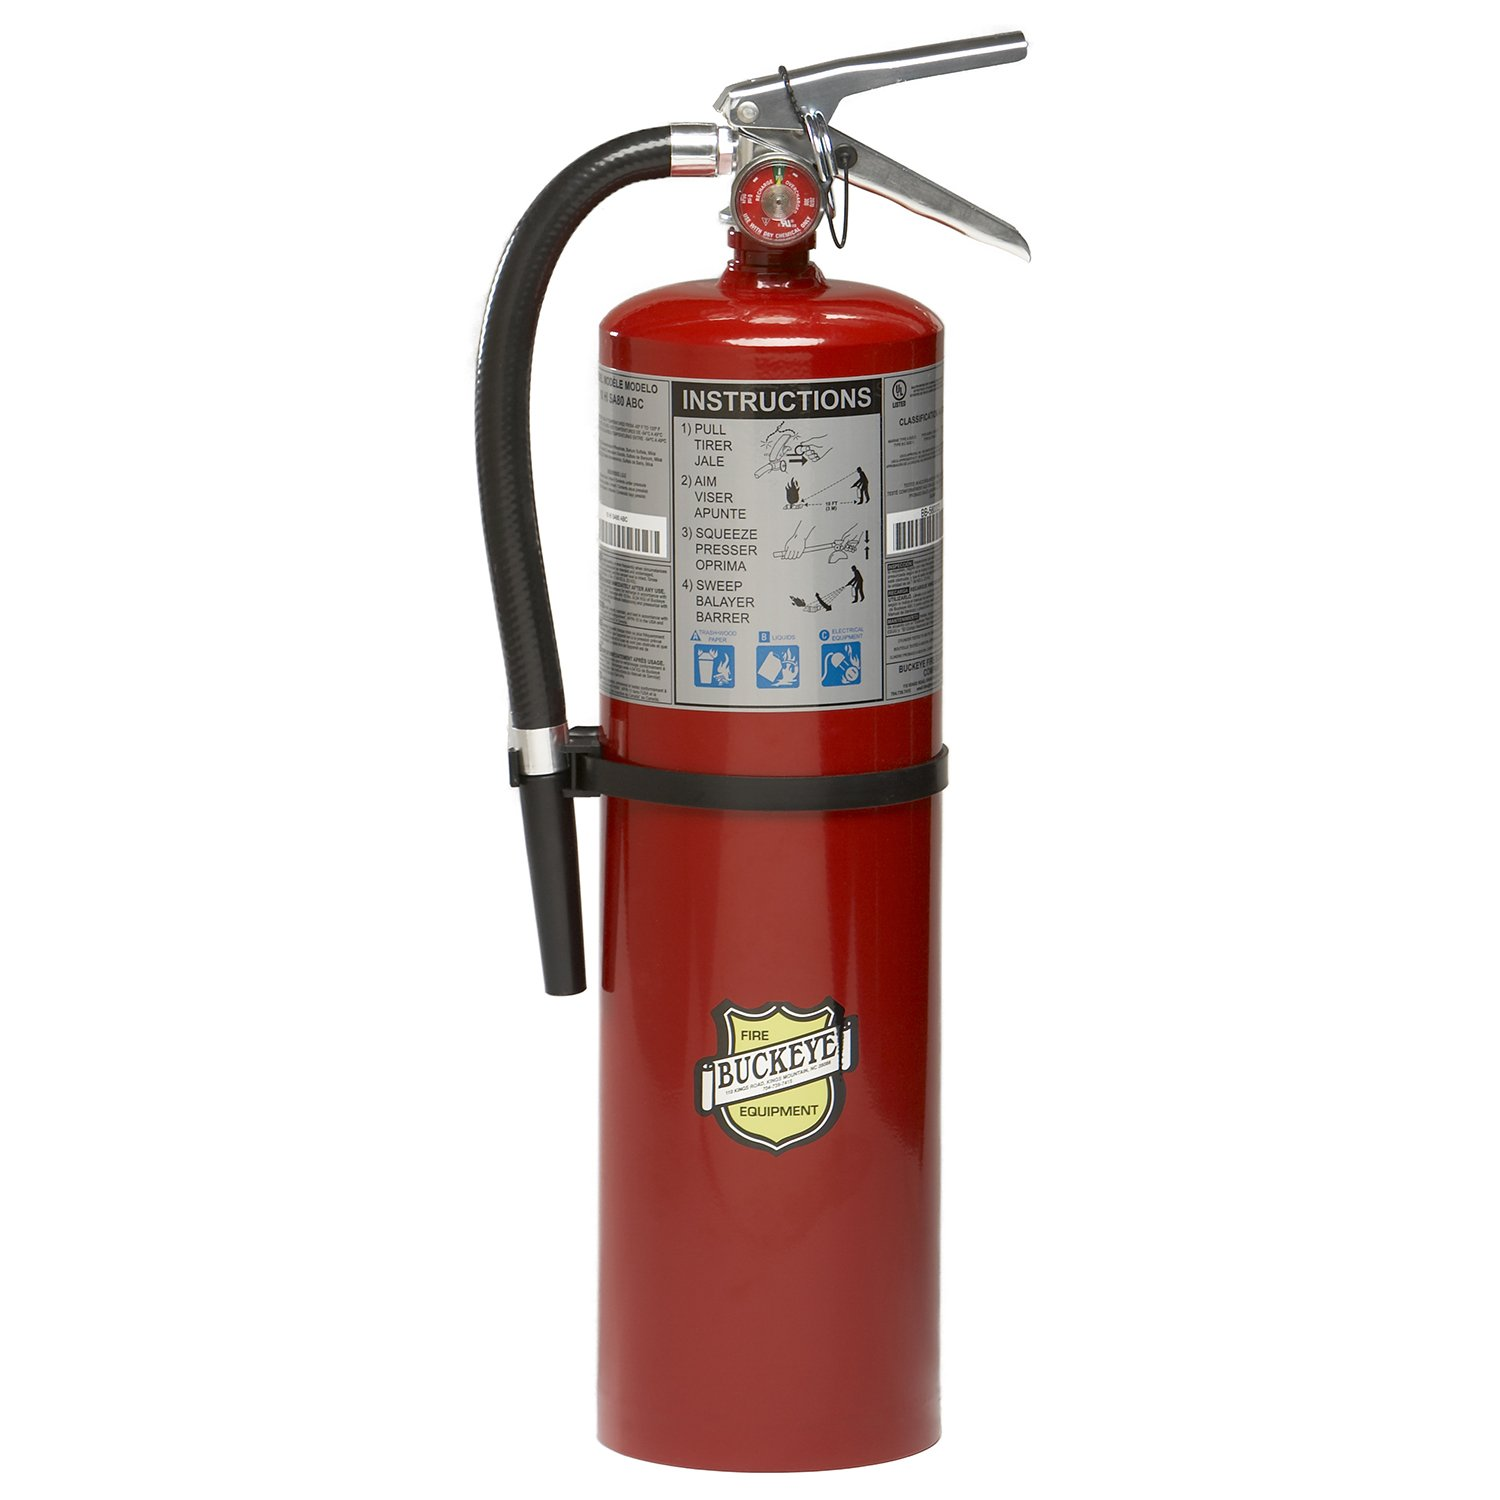 Buckeye 11340 ABC Multipurpose Dry Chemical Hand Held Fire Extinguisher with Aluminum Valve and Wall Hook, 10 lbs Agent Capacity, 5-1/8